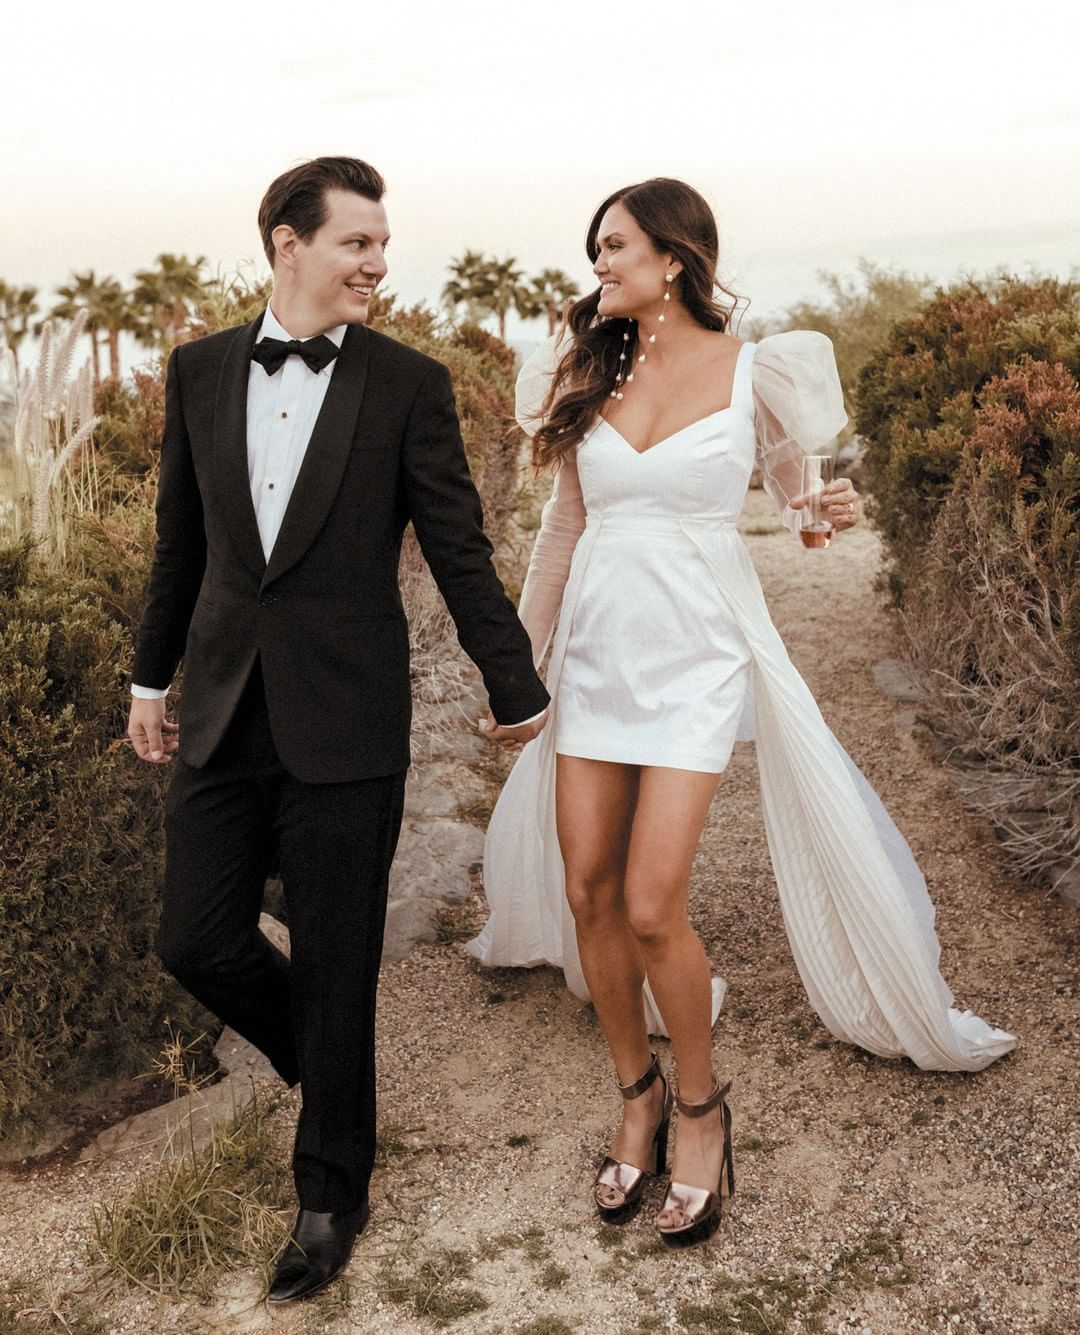 10 Wedding Dress Questions You Might Have Due To Coronavirus